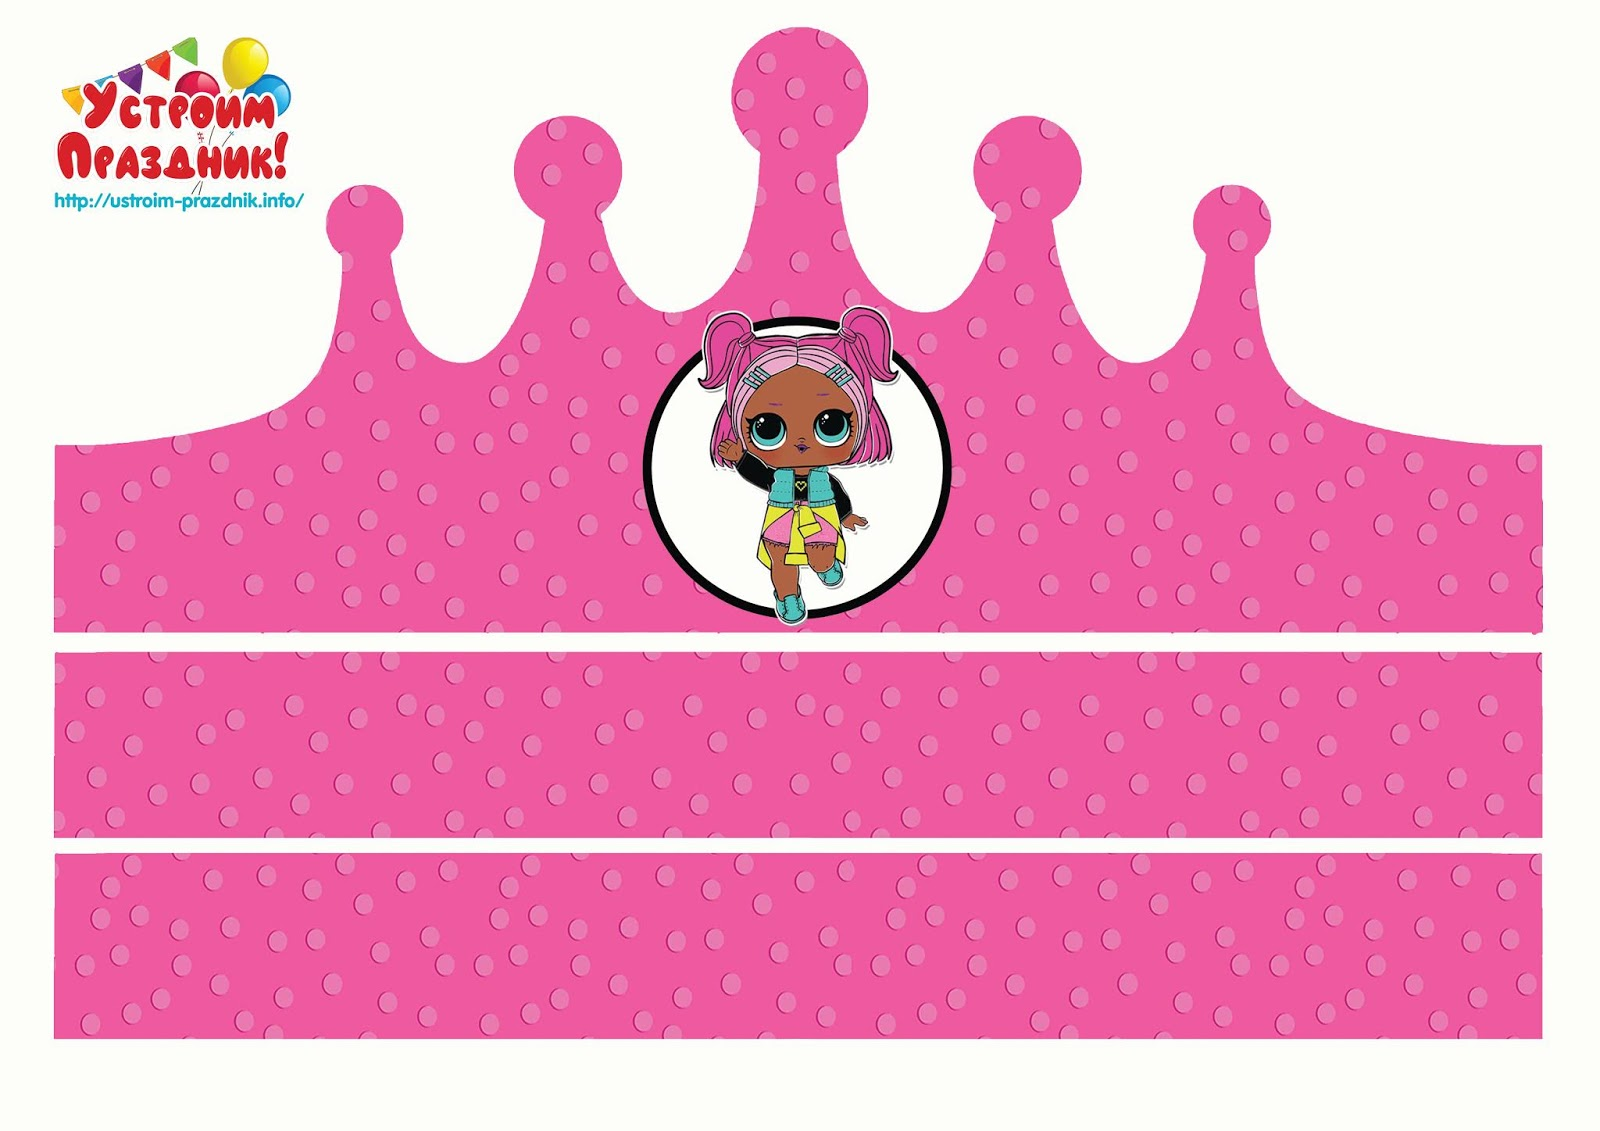 photo about Printable Crowns identify LOL Speculate Free of charge Printable Crowns. - Oh My Fiesta! inside of english